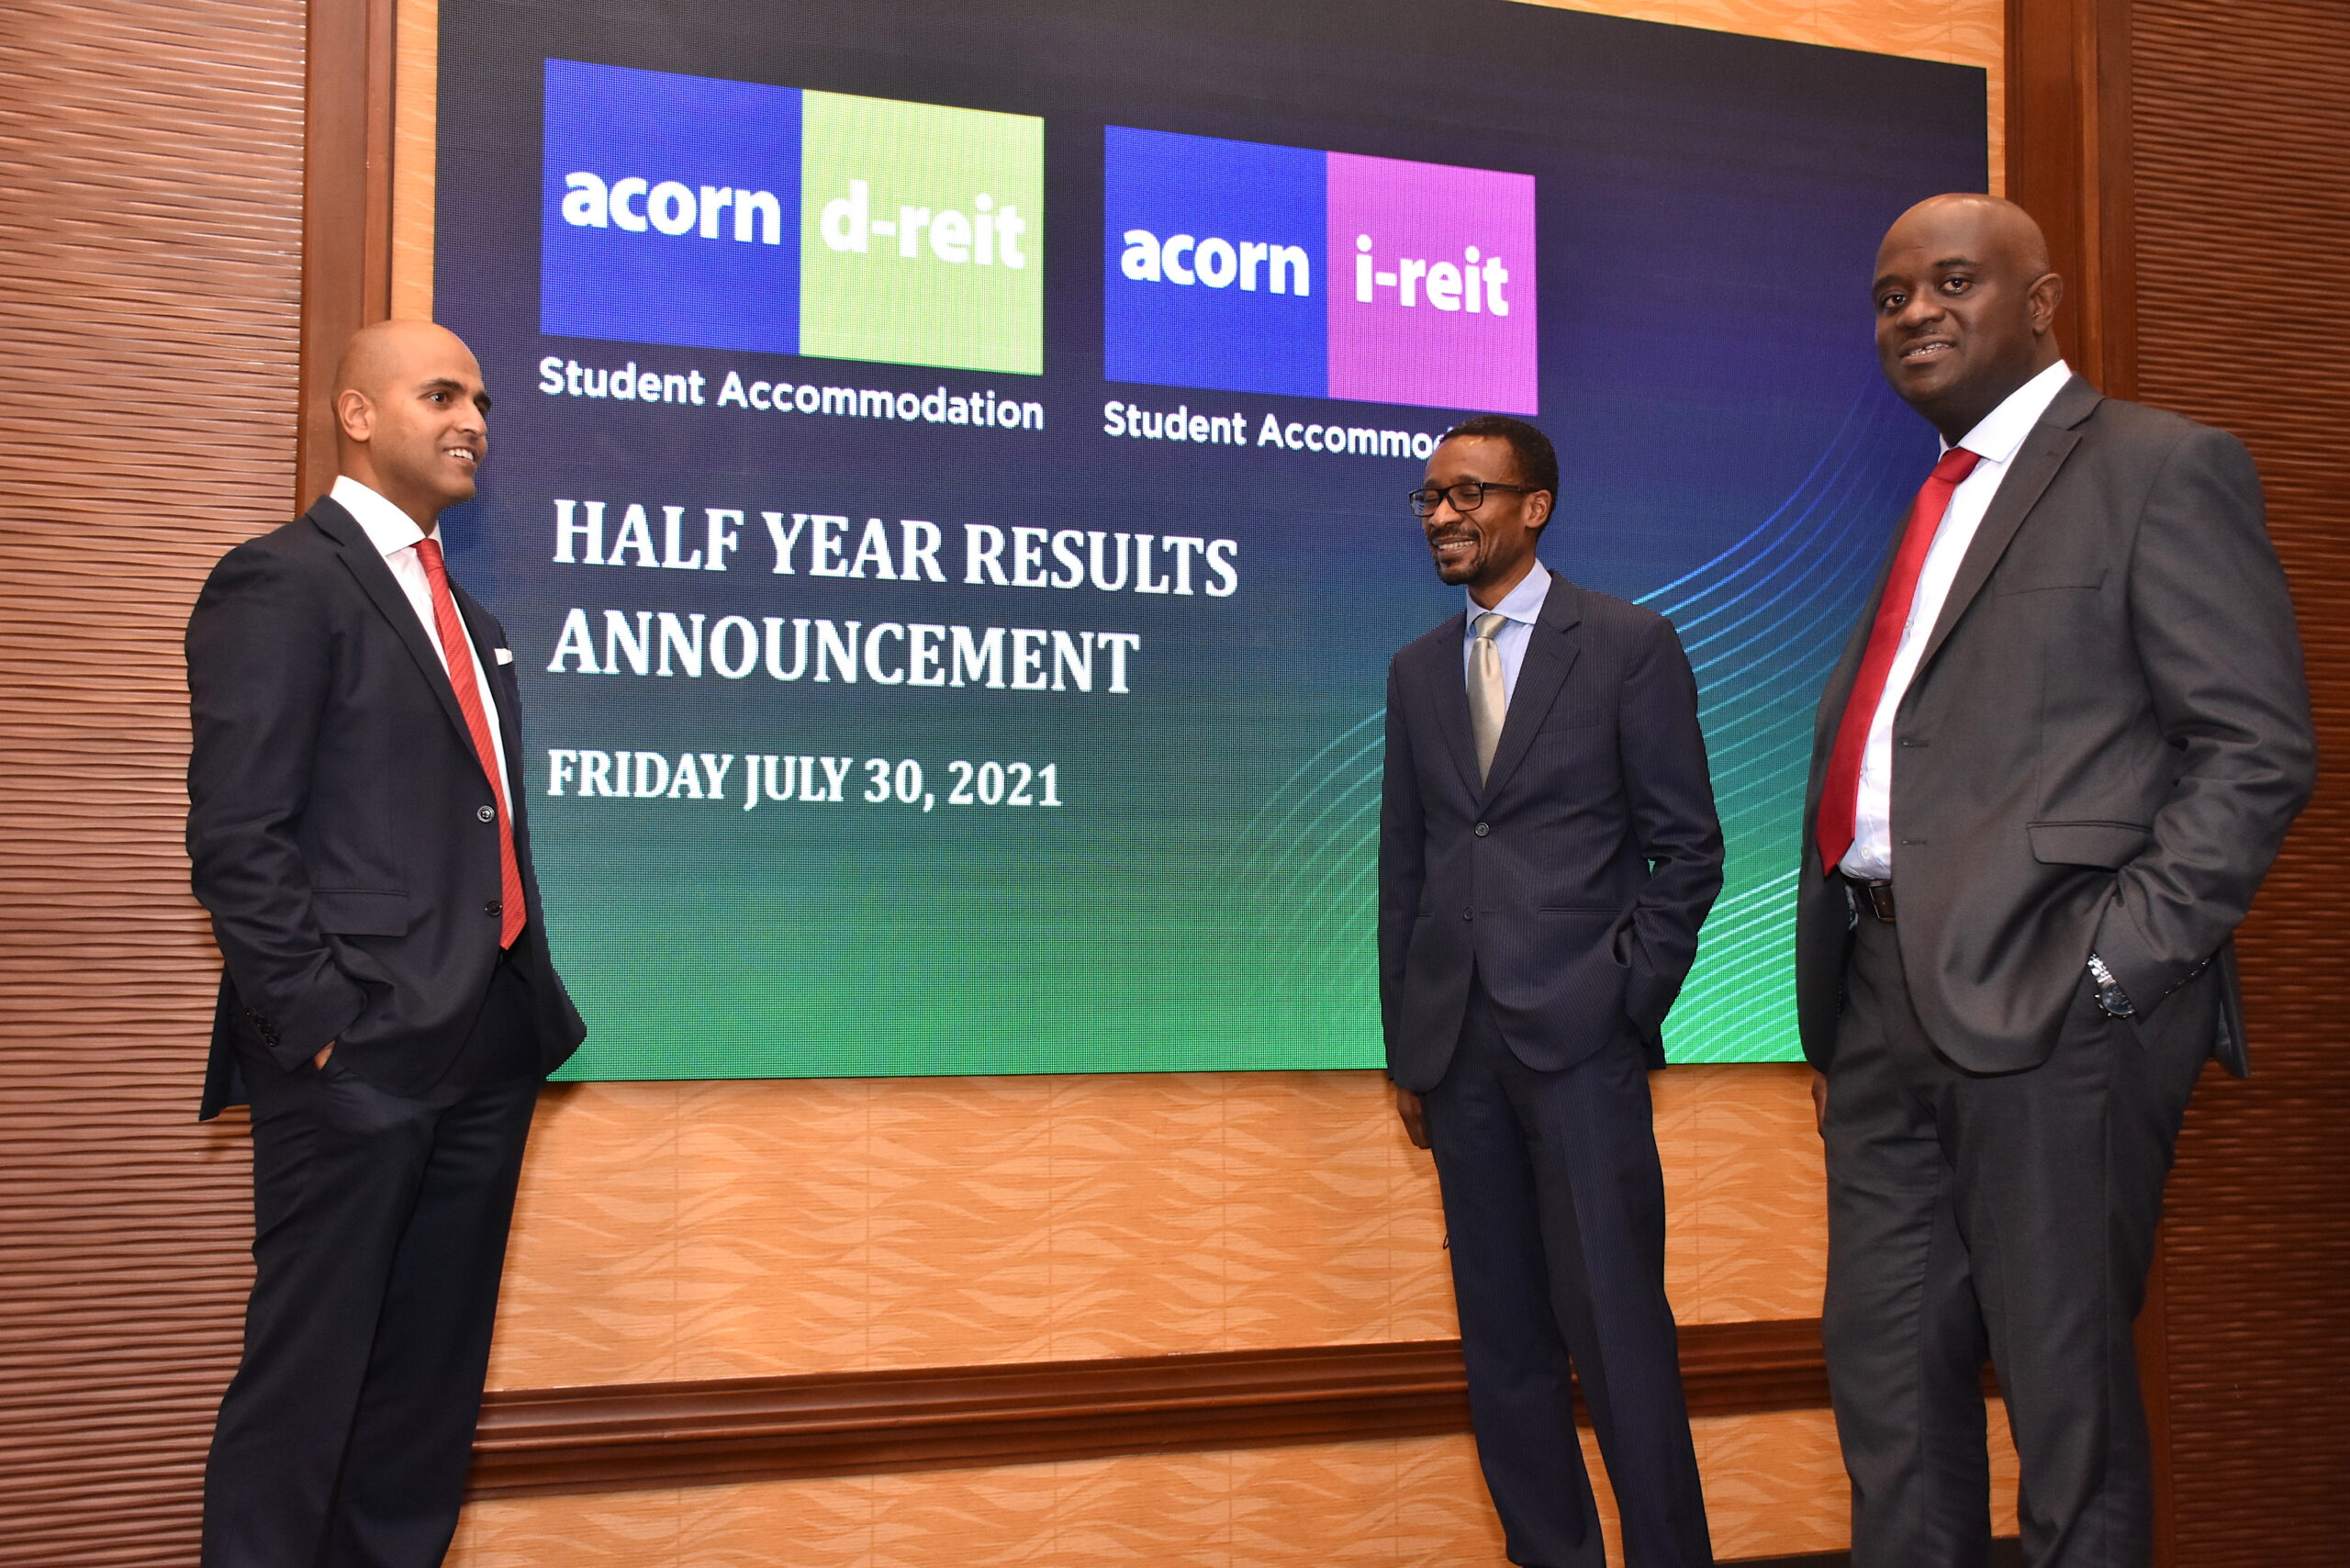 Acorn Student Accommodation Nets Ksh79 Million Income  to Surpass Target